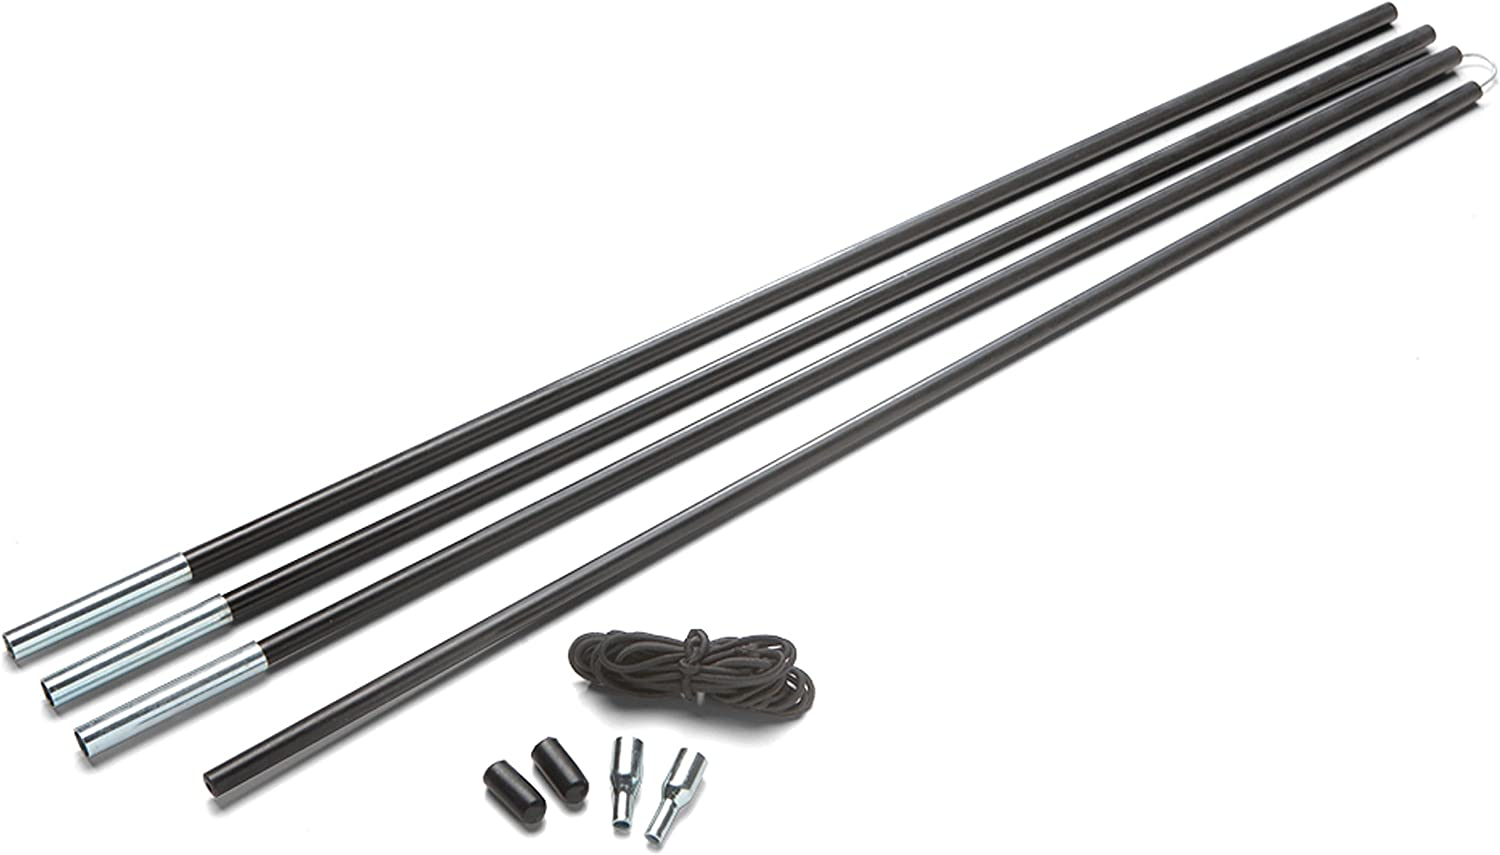 Coghlan's Fiberglass Tent Pole Replacement Kit